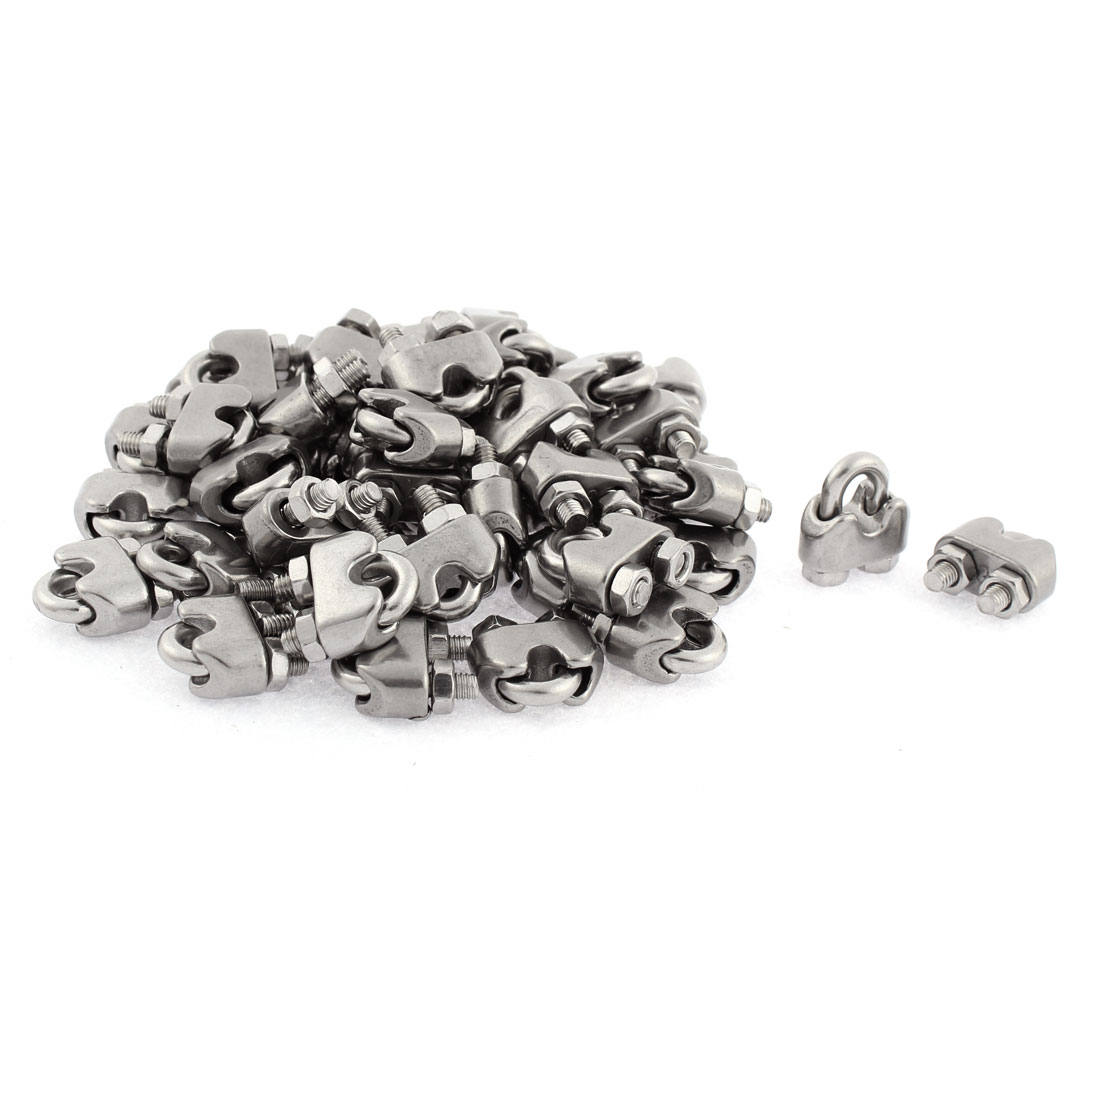 M3 Stainless Steel Wire Rope Clamp Clip Silver Tone 50pcs